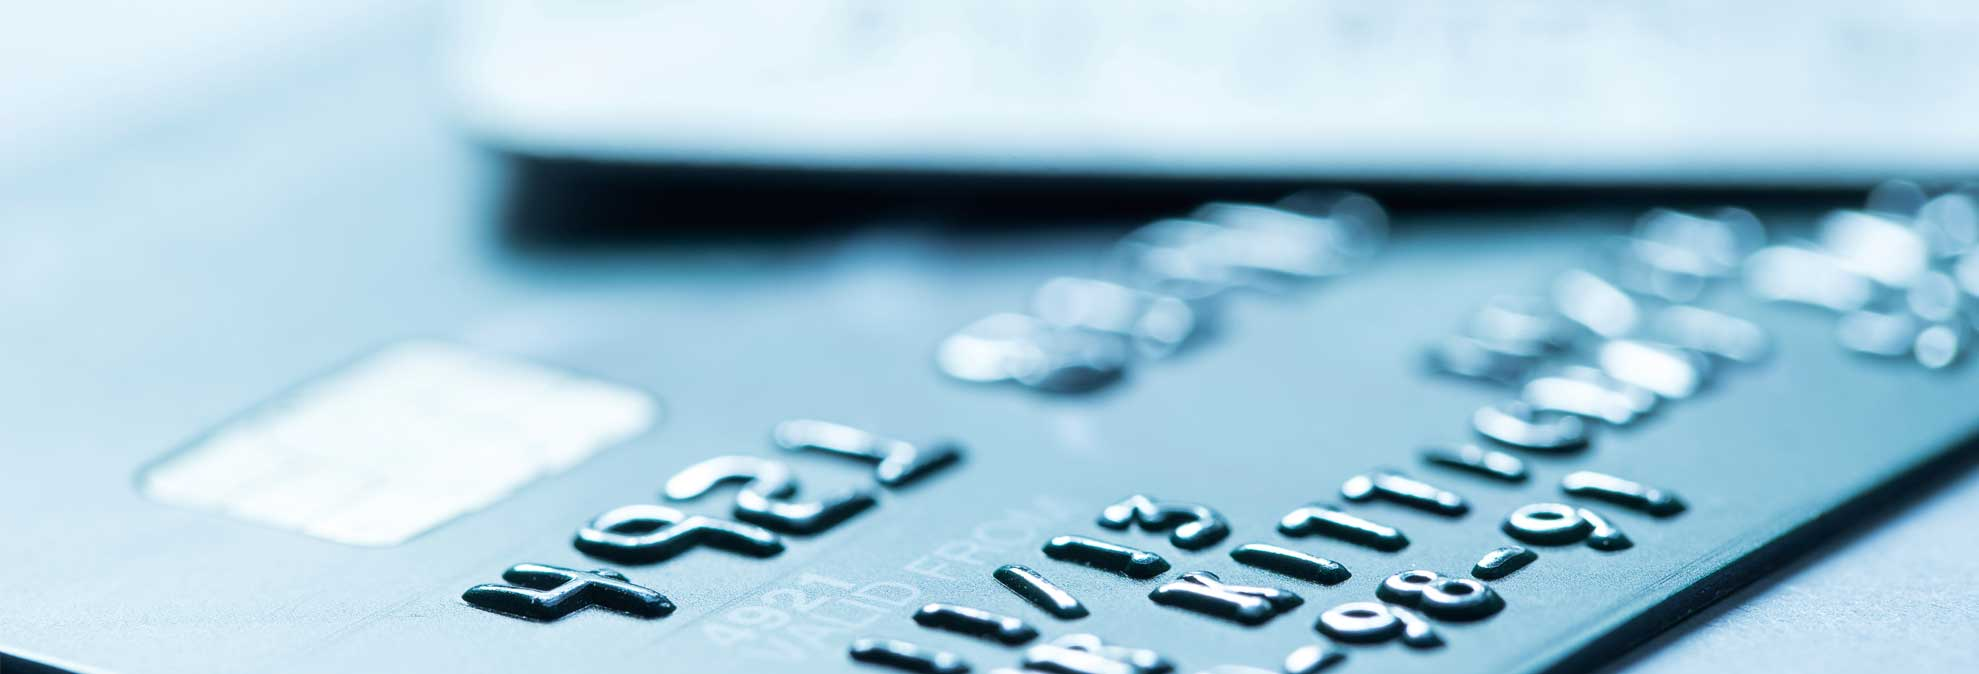 business credit cards not required to provide some protections - Apply For Business Credit Card